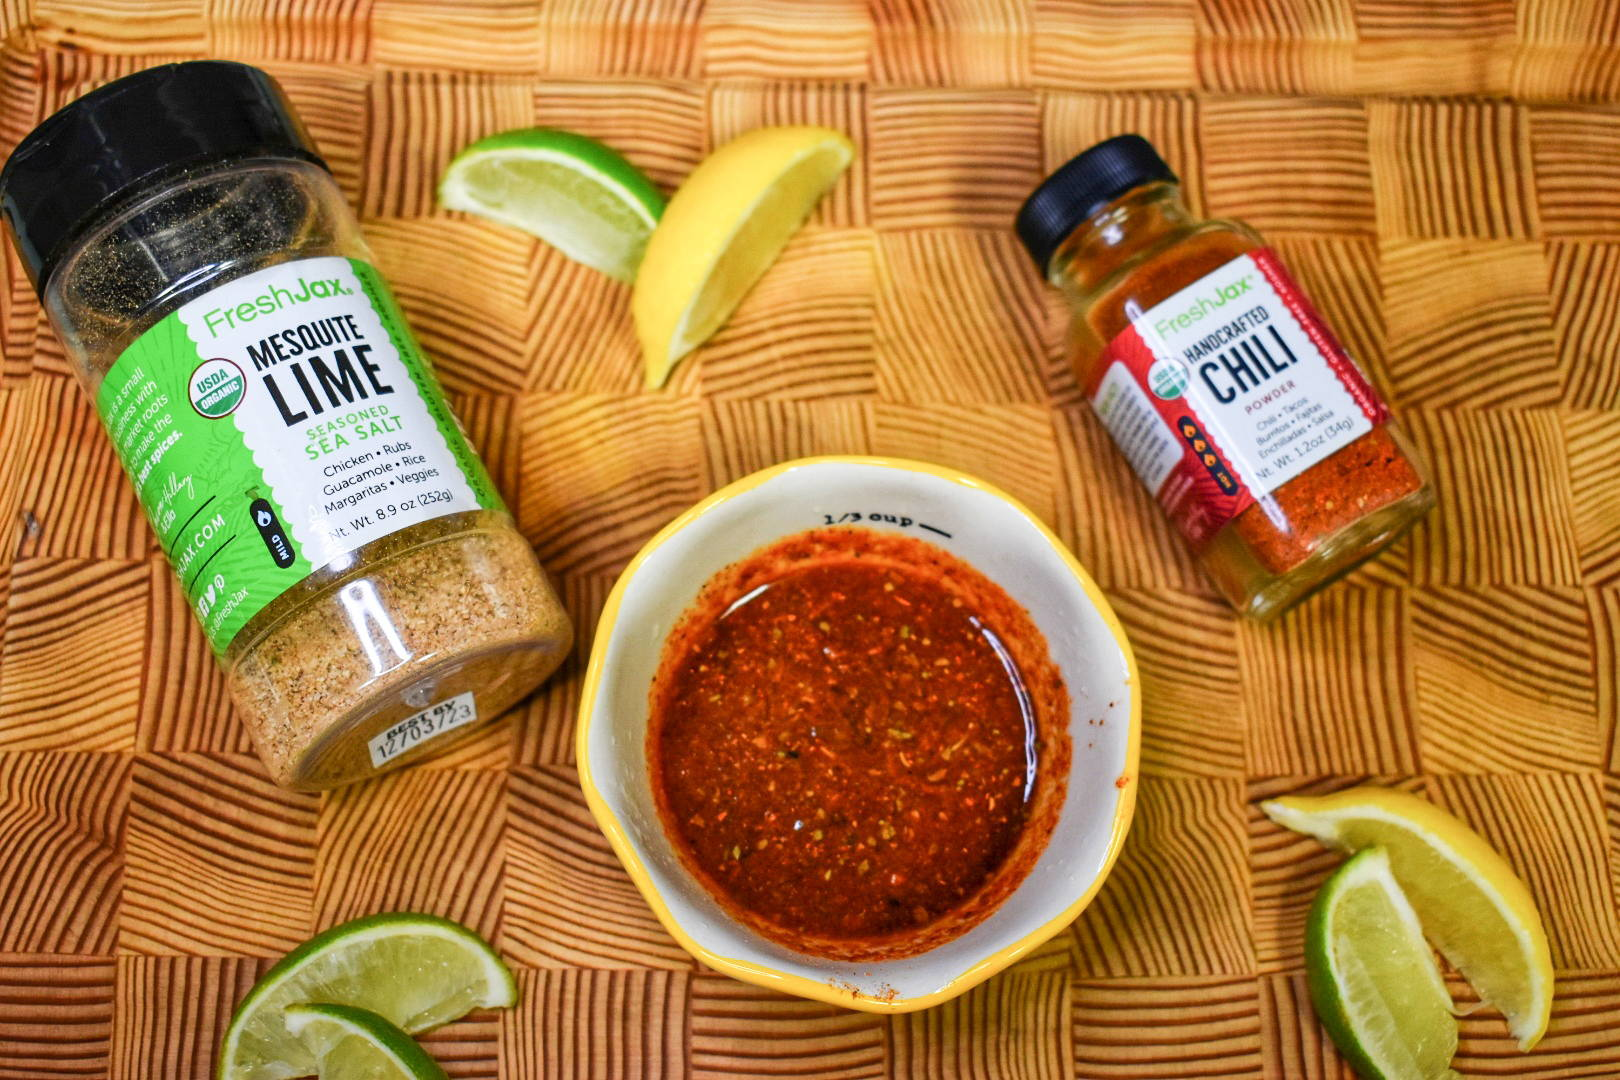 FreshJax Organic Mesquite Lime spice bottle and Handcrafted Chili spice bottle on cutting board with lemon, lime wedges and chili sauce